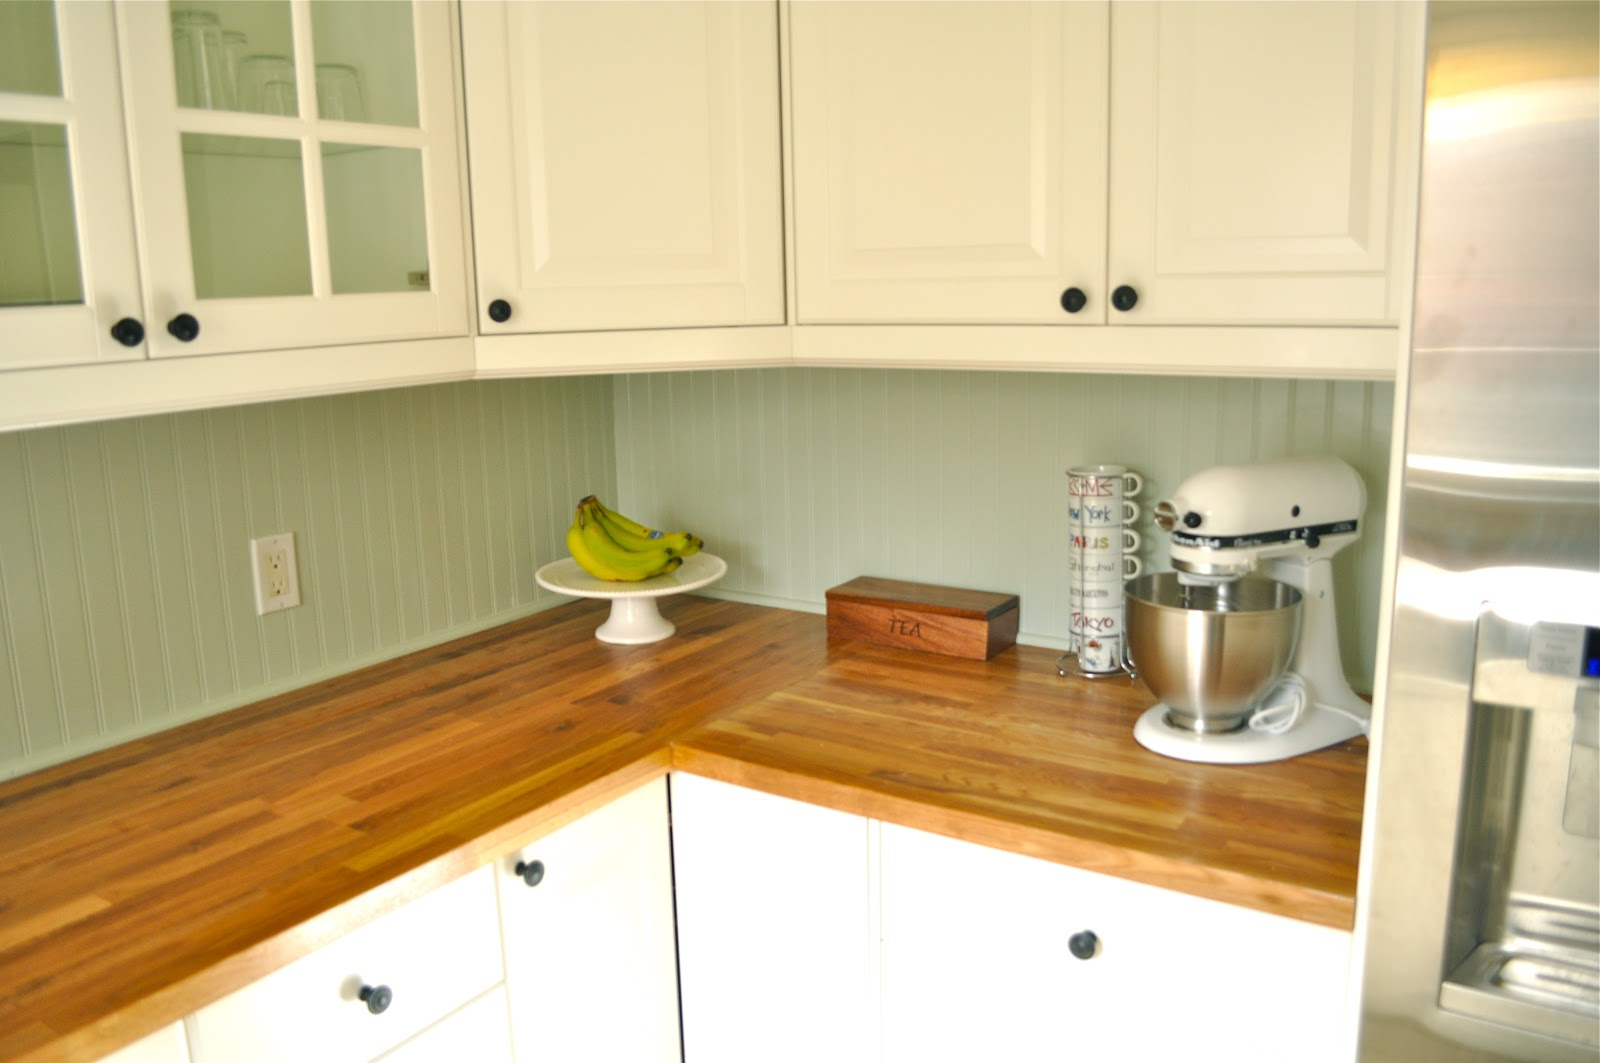 How To Install Ikea Countertops It 39s Marvelous A Few Kitchen Follow Ups Butcher Block